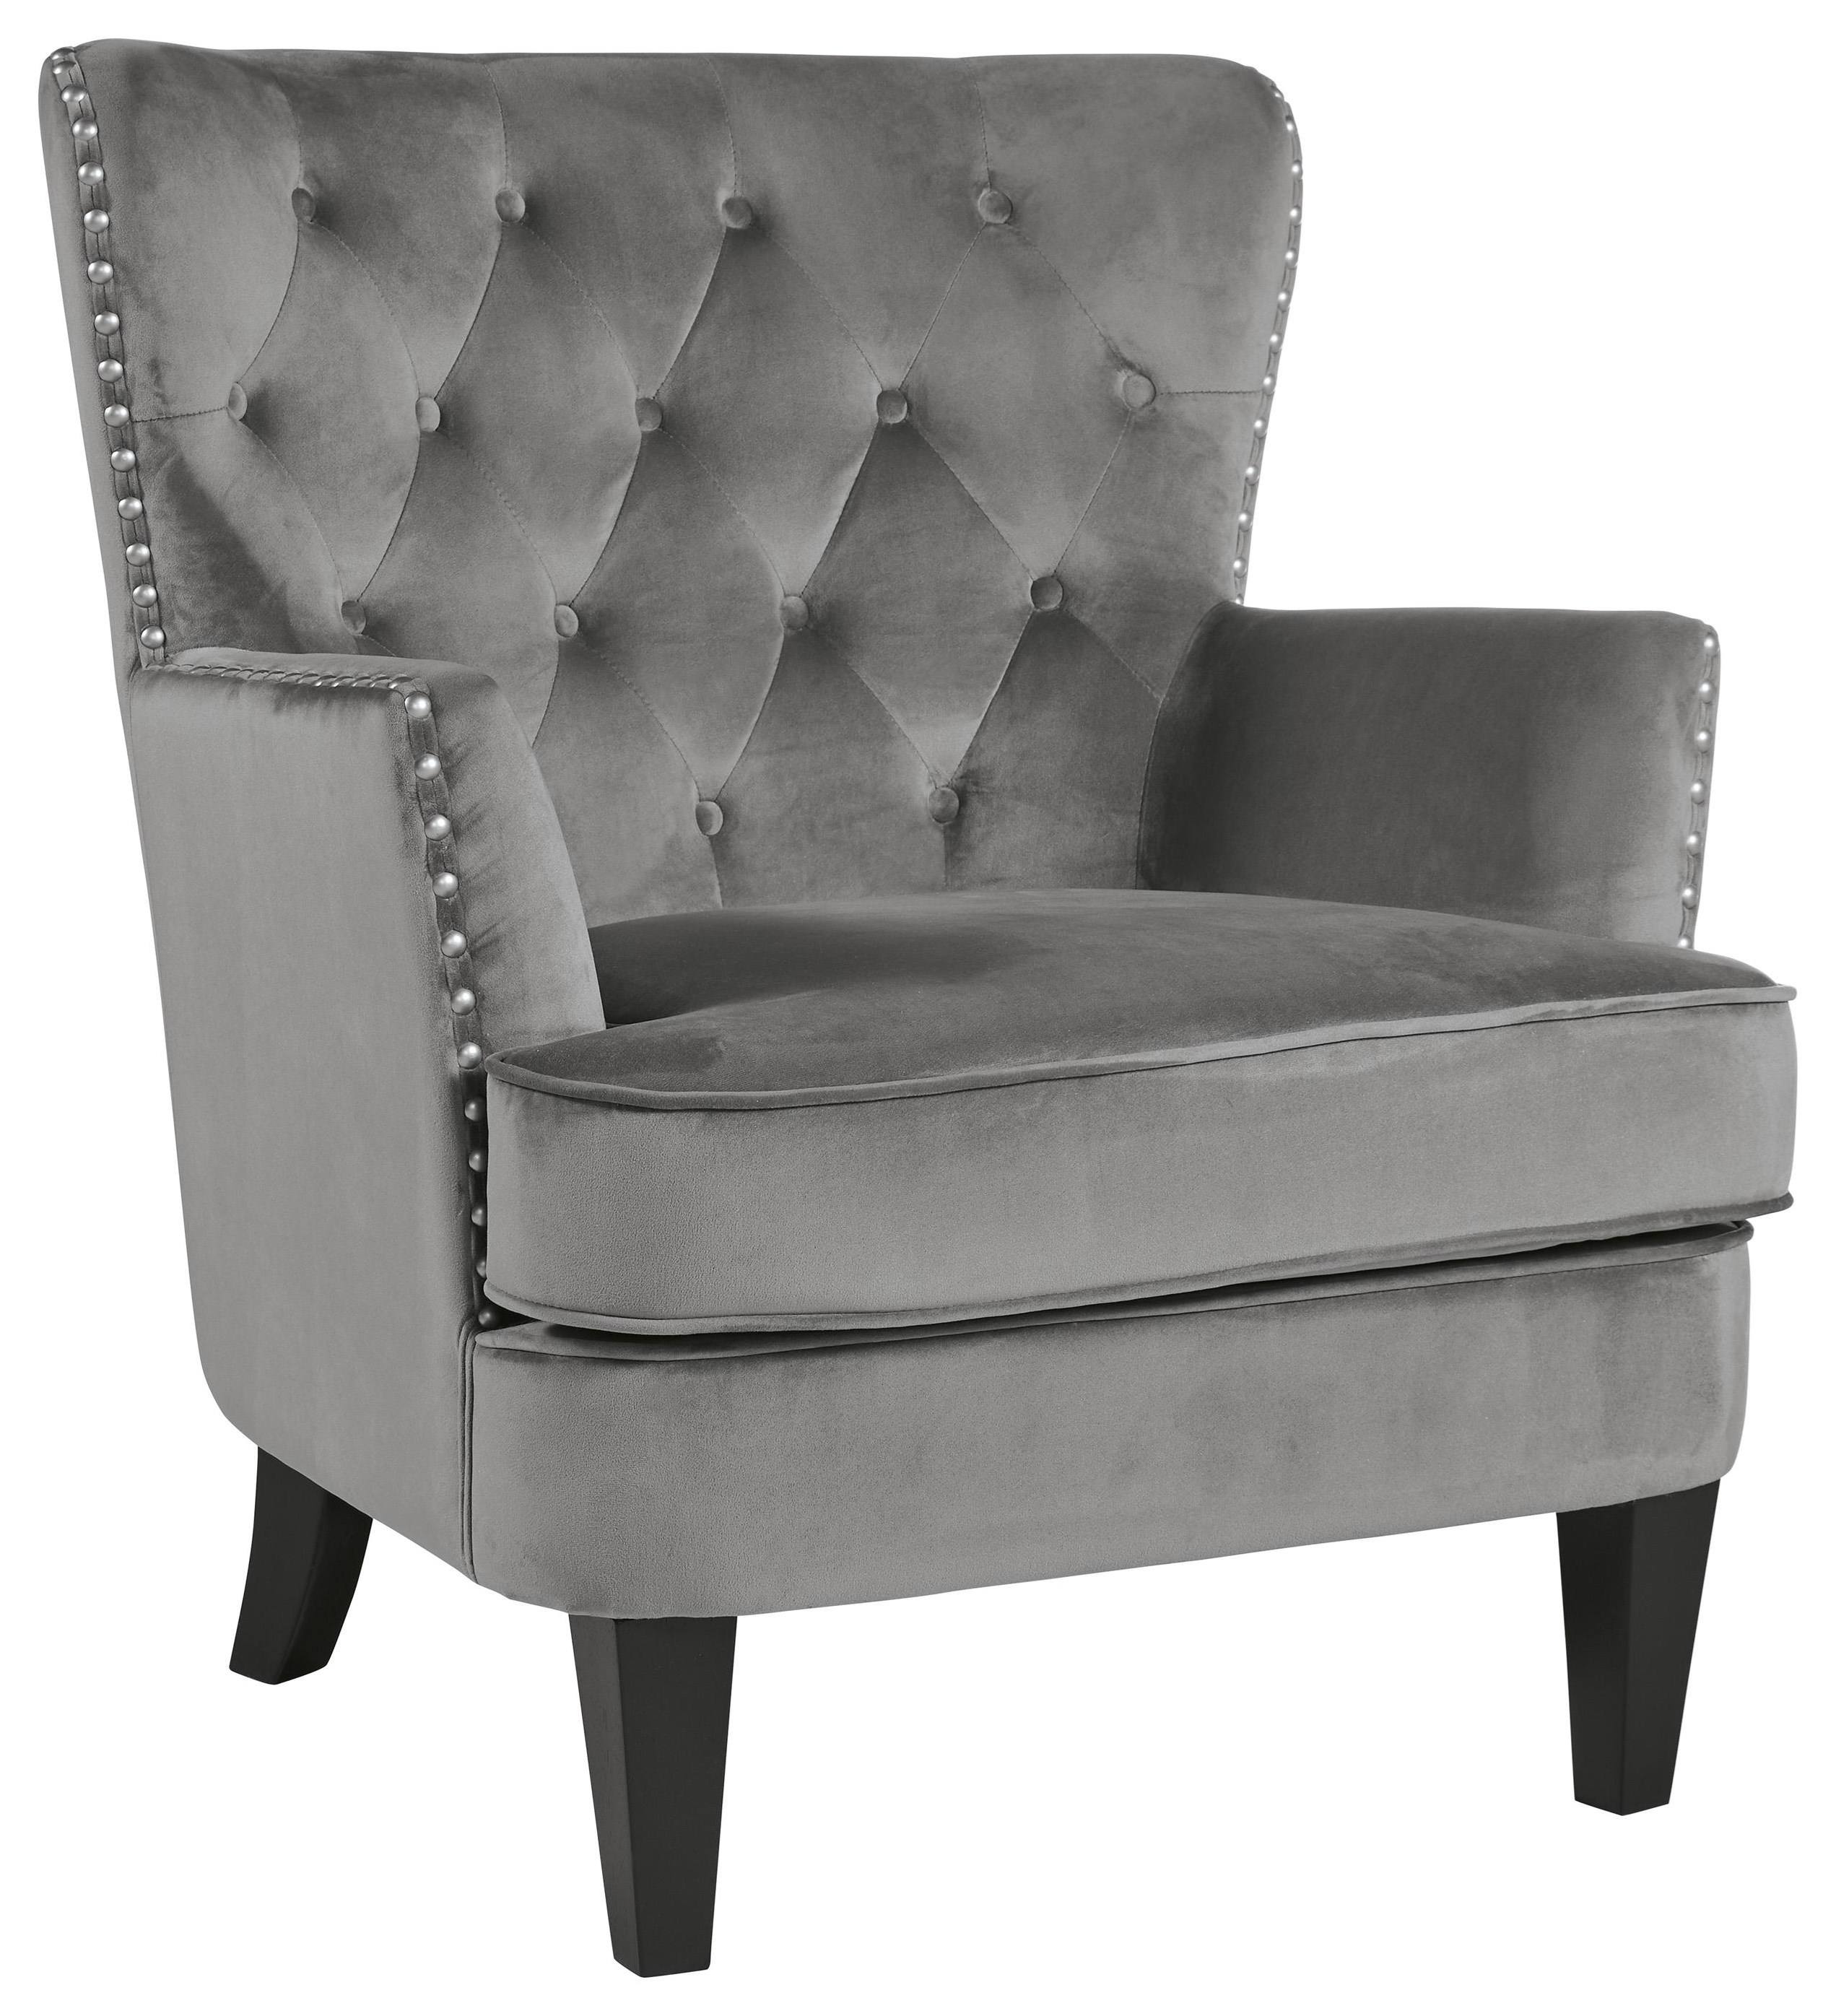 Romansque Accent Chair by Signature Design by Ashley at Sam Levitz Outlet